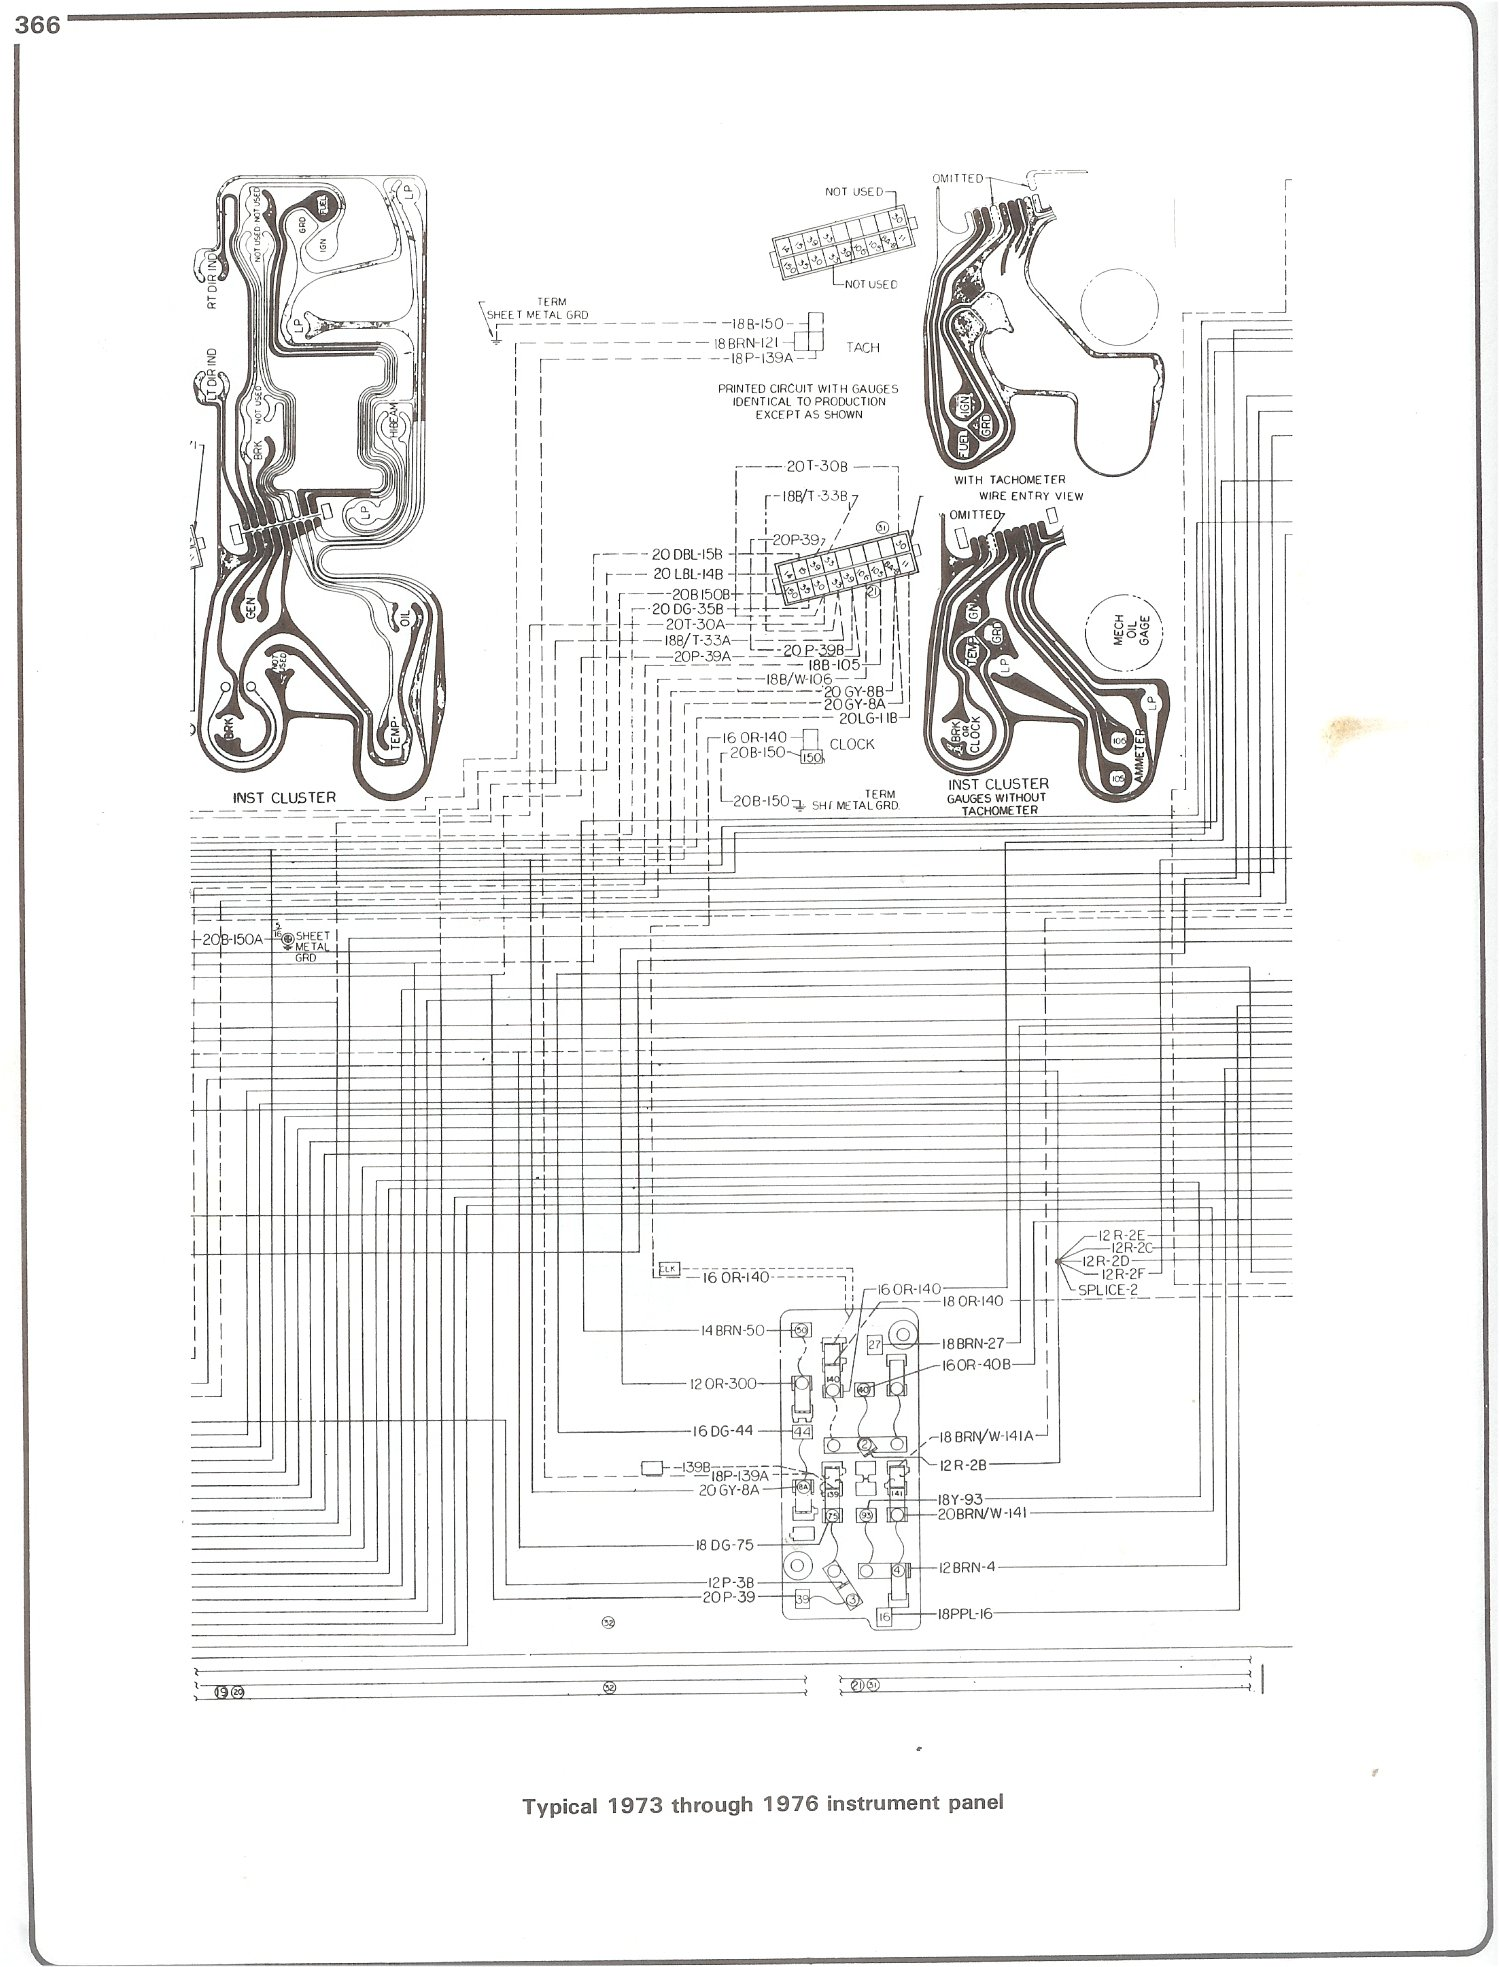 73 76_instrument complete 73 87 wiring diagrams 1984 chevy c10 wiring diagram at soozxer.org